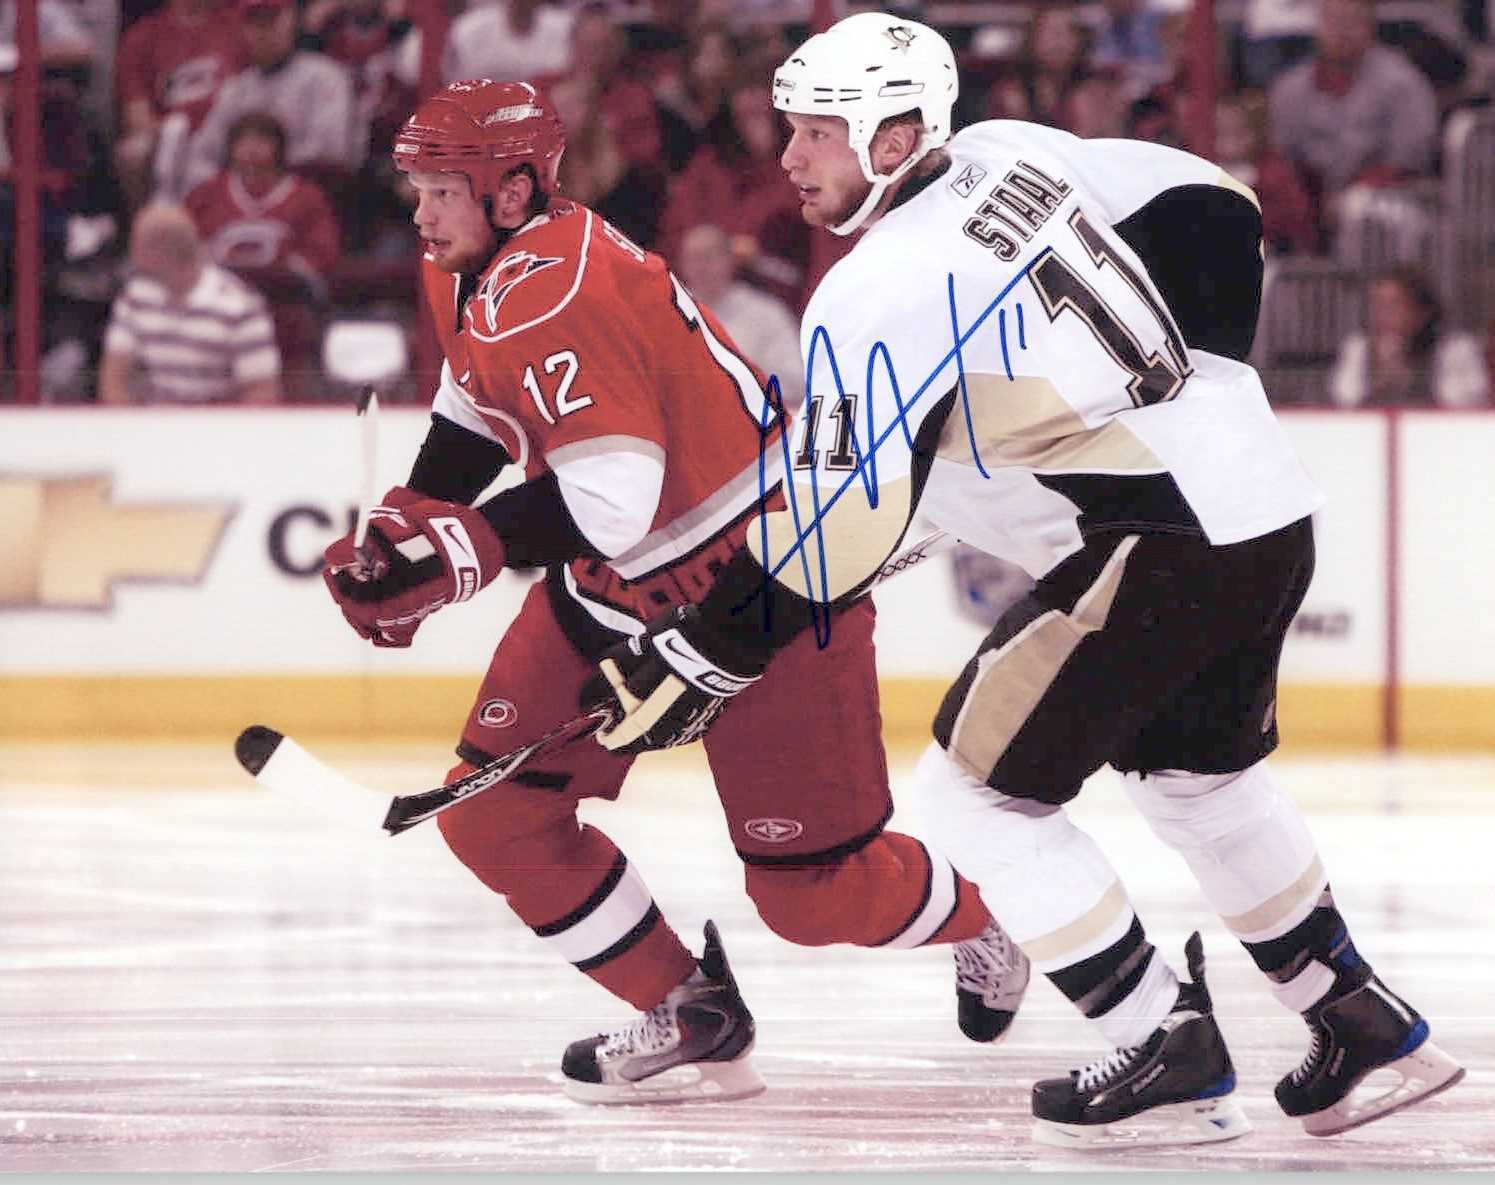 Primary image for Jordan Staal Signed Autographed Glossy 8x10 Photo - Pittsburgh Penguins